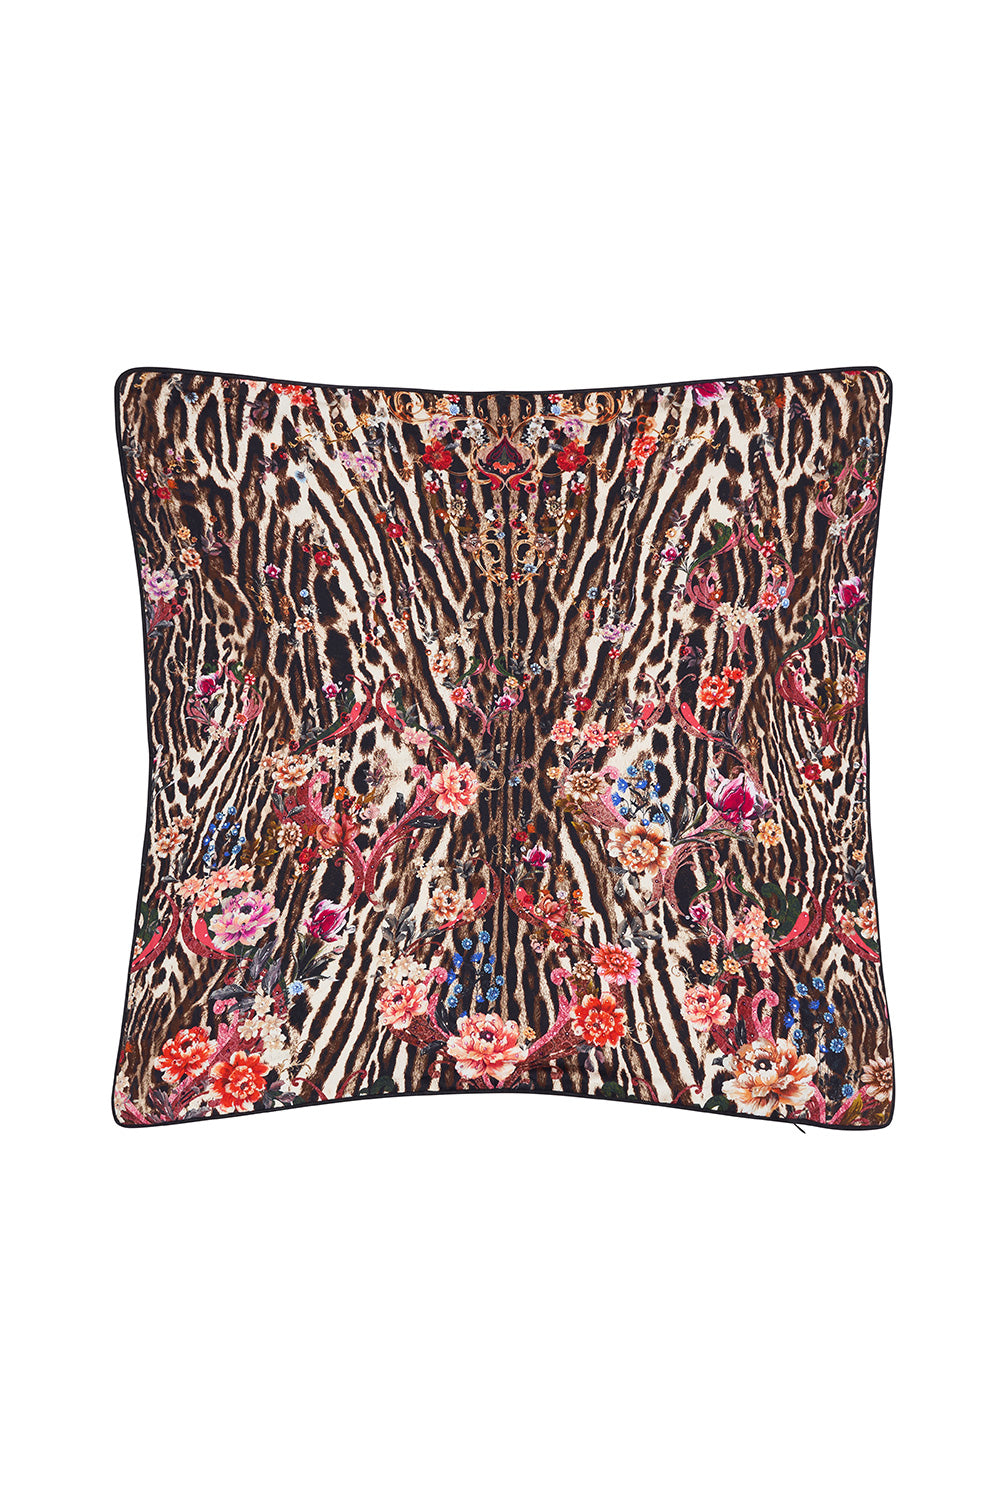 LARGE SQUARE CUSHION LIV A LITTLE